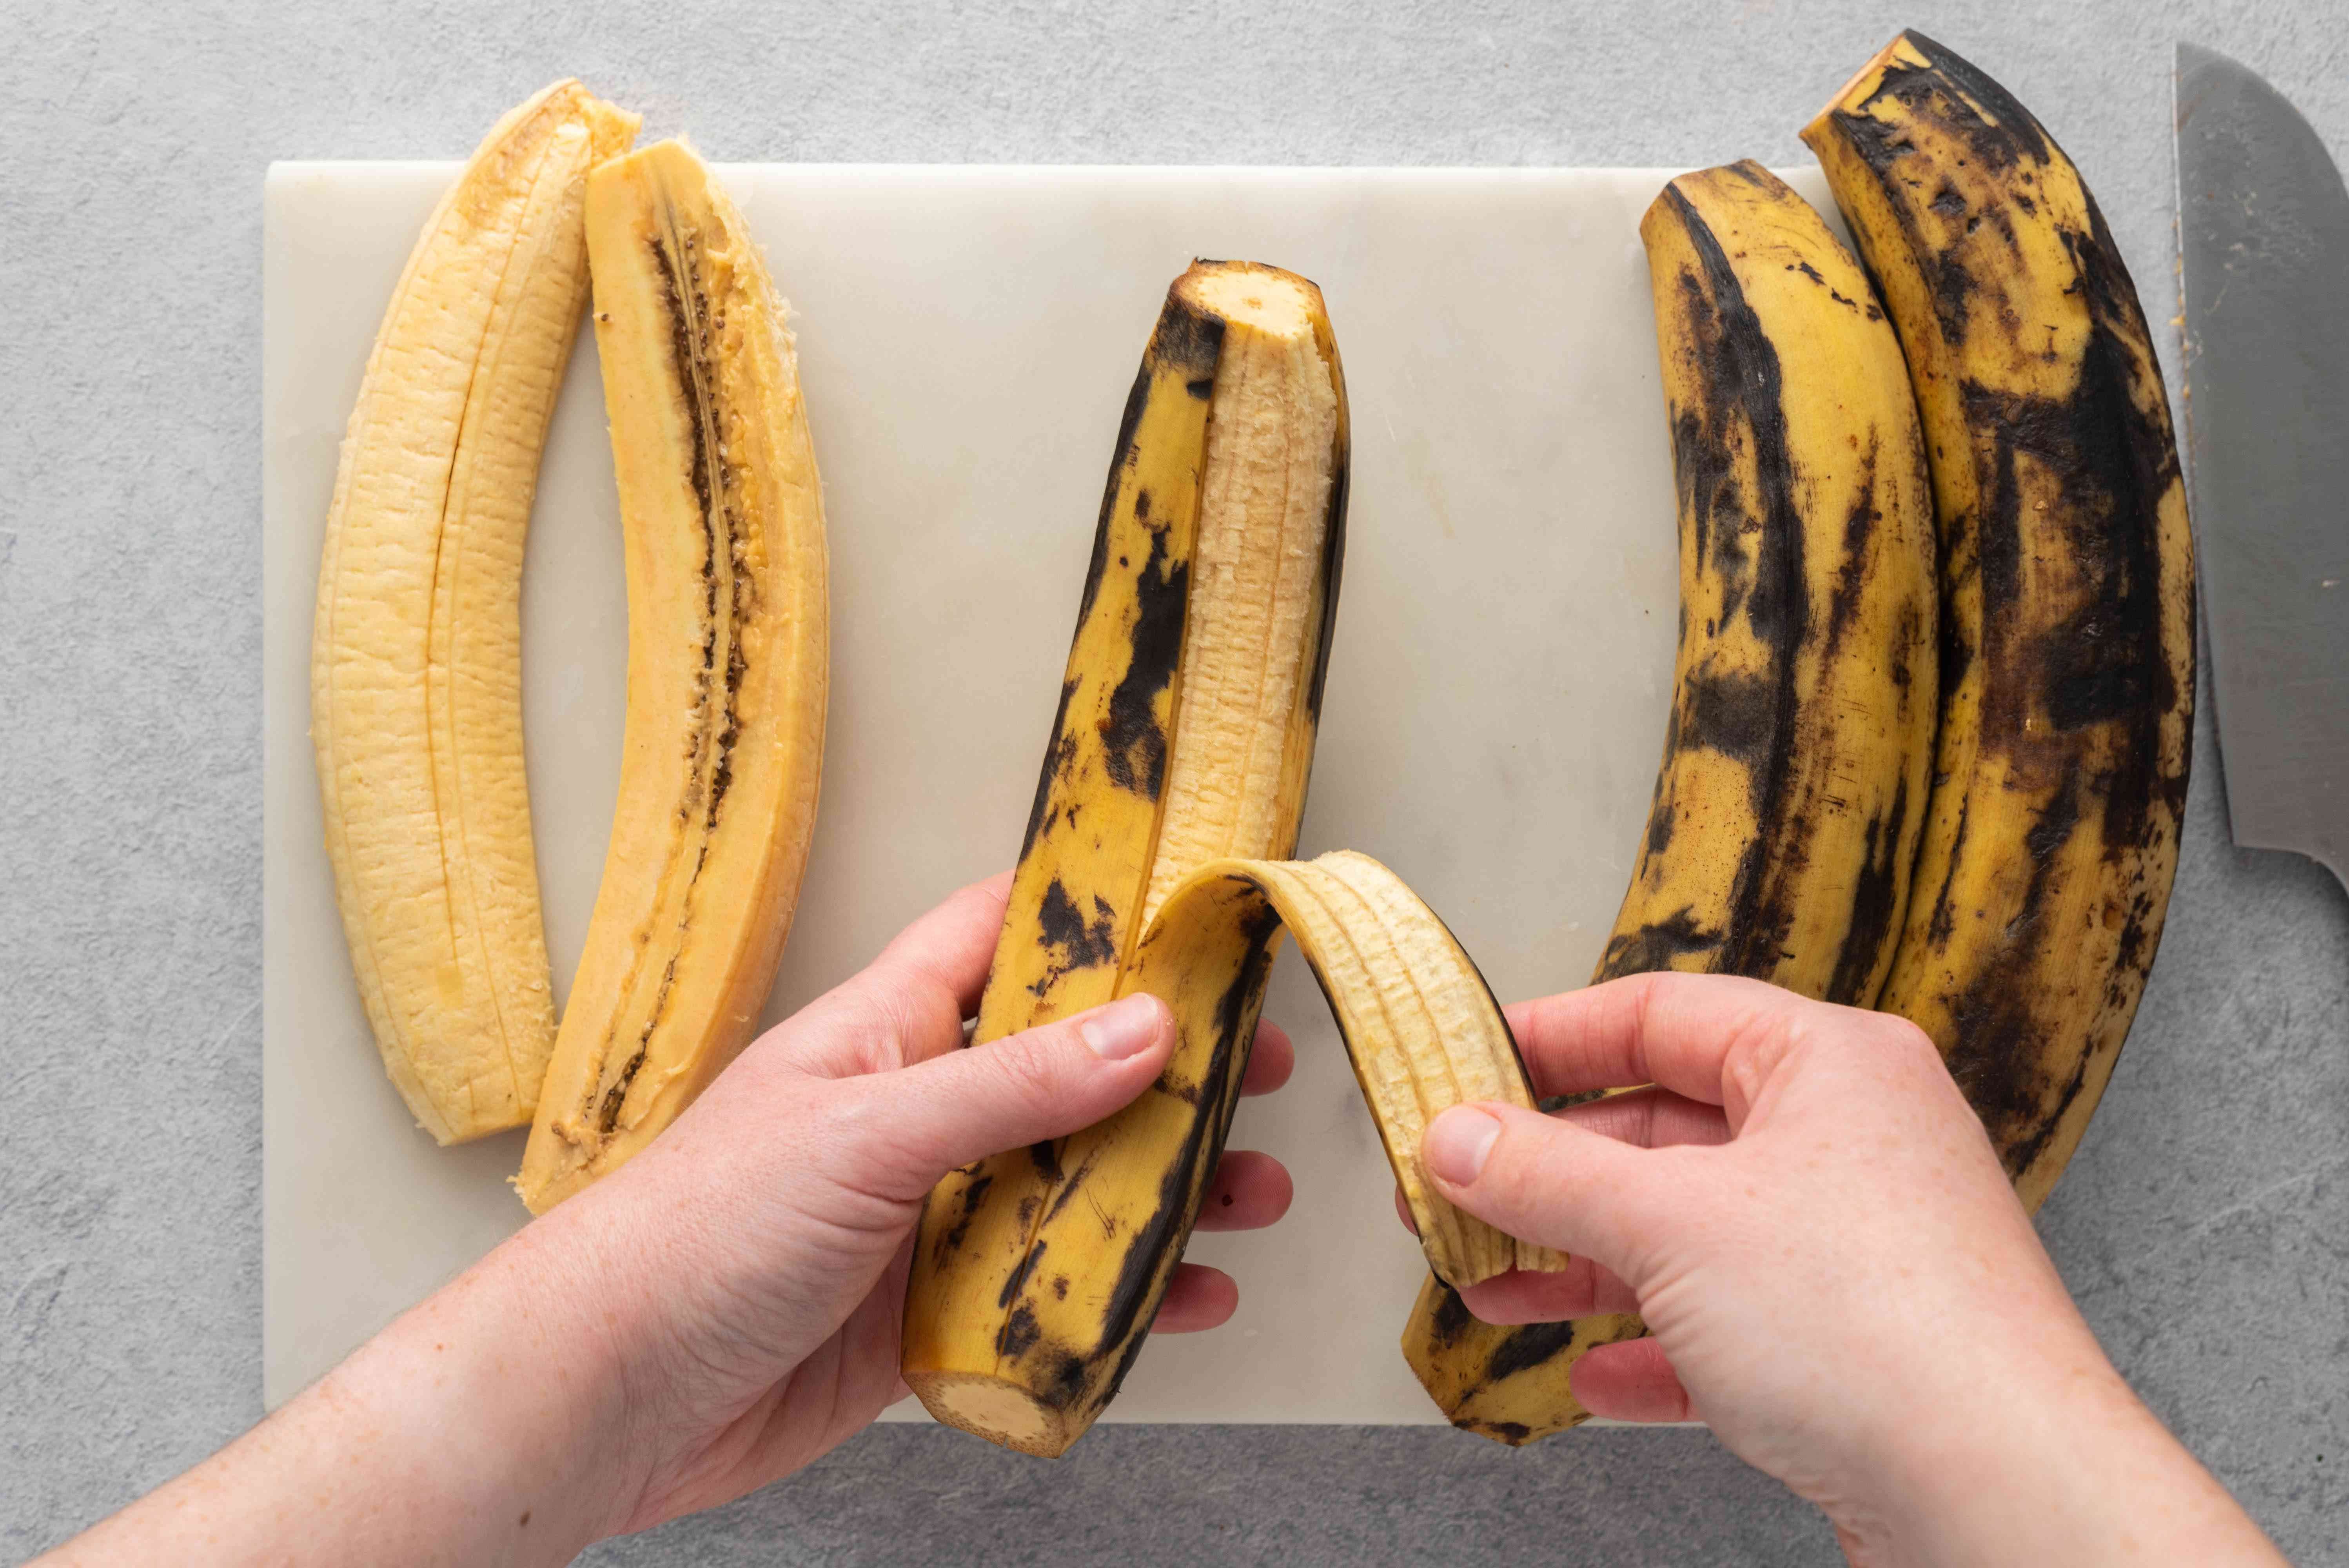 Peel the skin off the plantains, then slice each one in half lengthwise